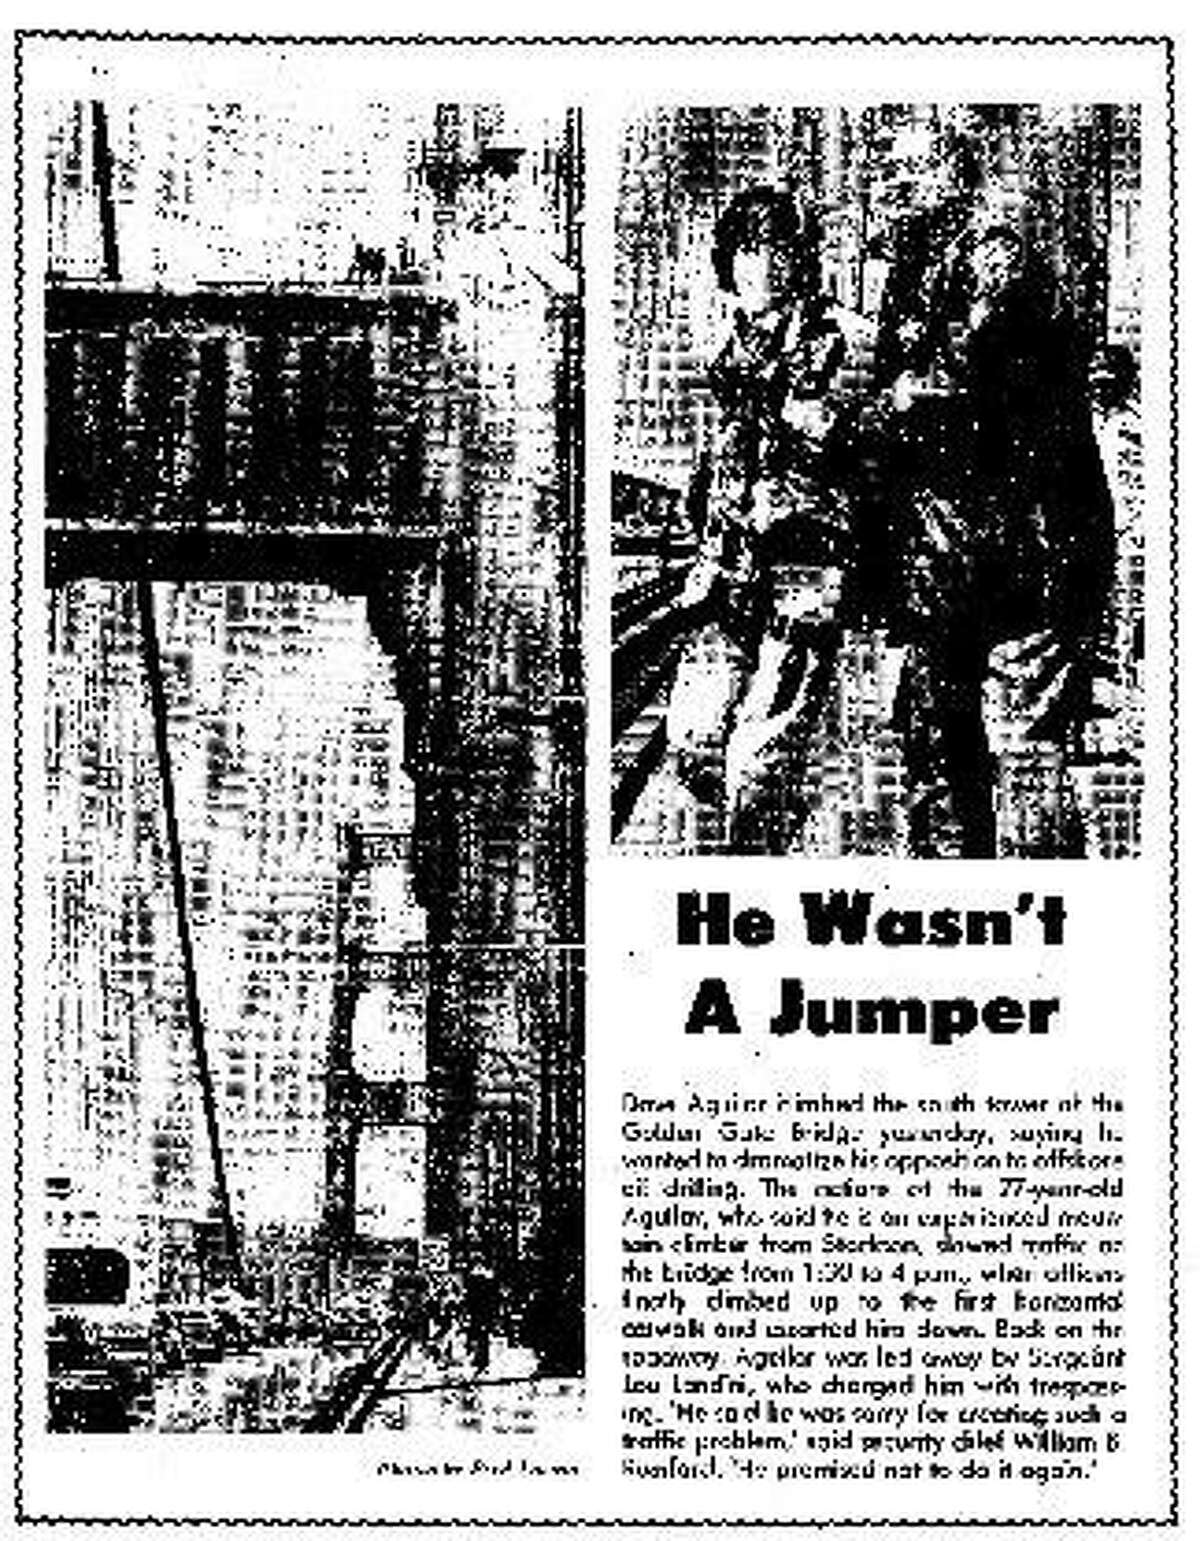 Dave Aguilar .. climbs the Golden Gate Bridge tower to express his opposition to offshore oil drilling, 05/02/1981 stunt s